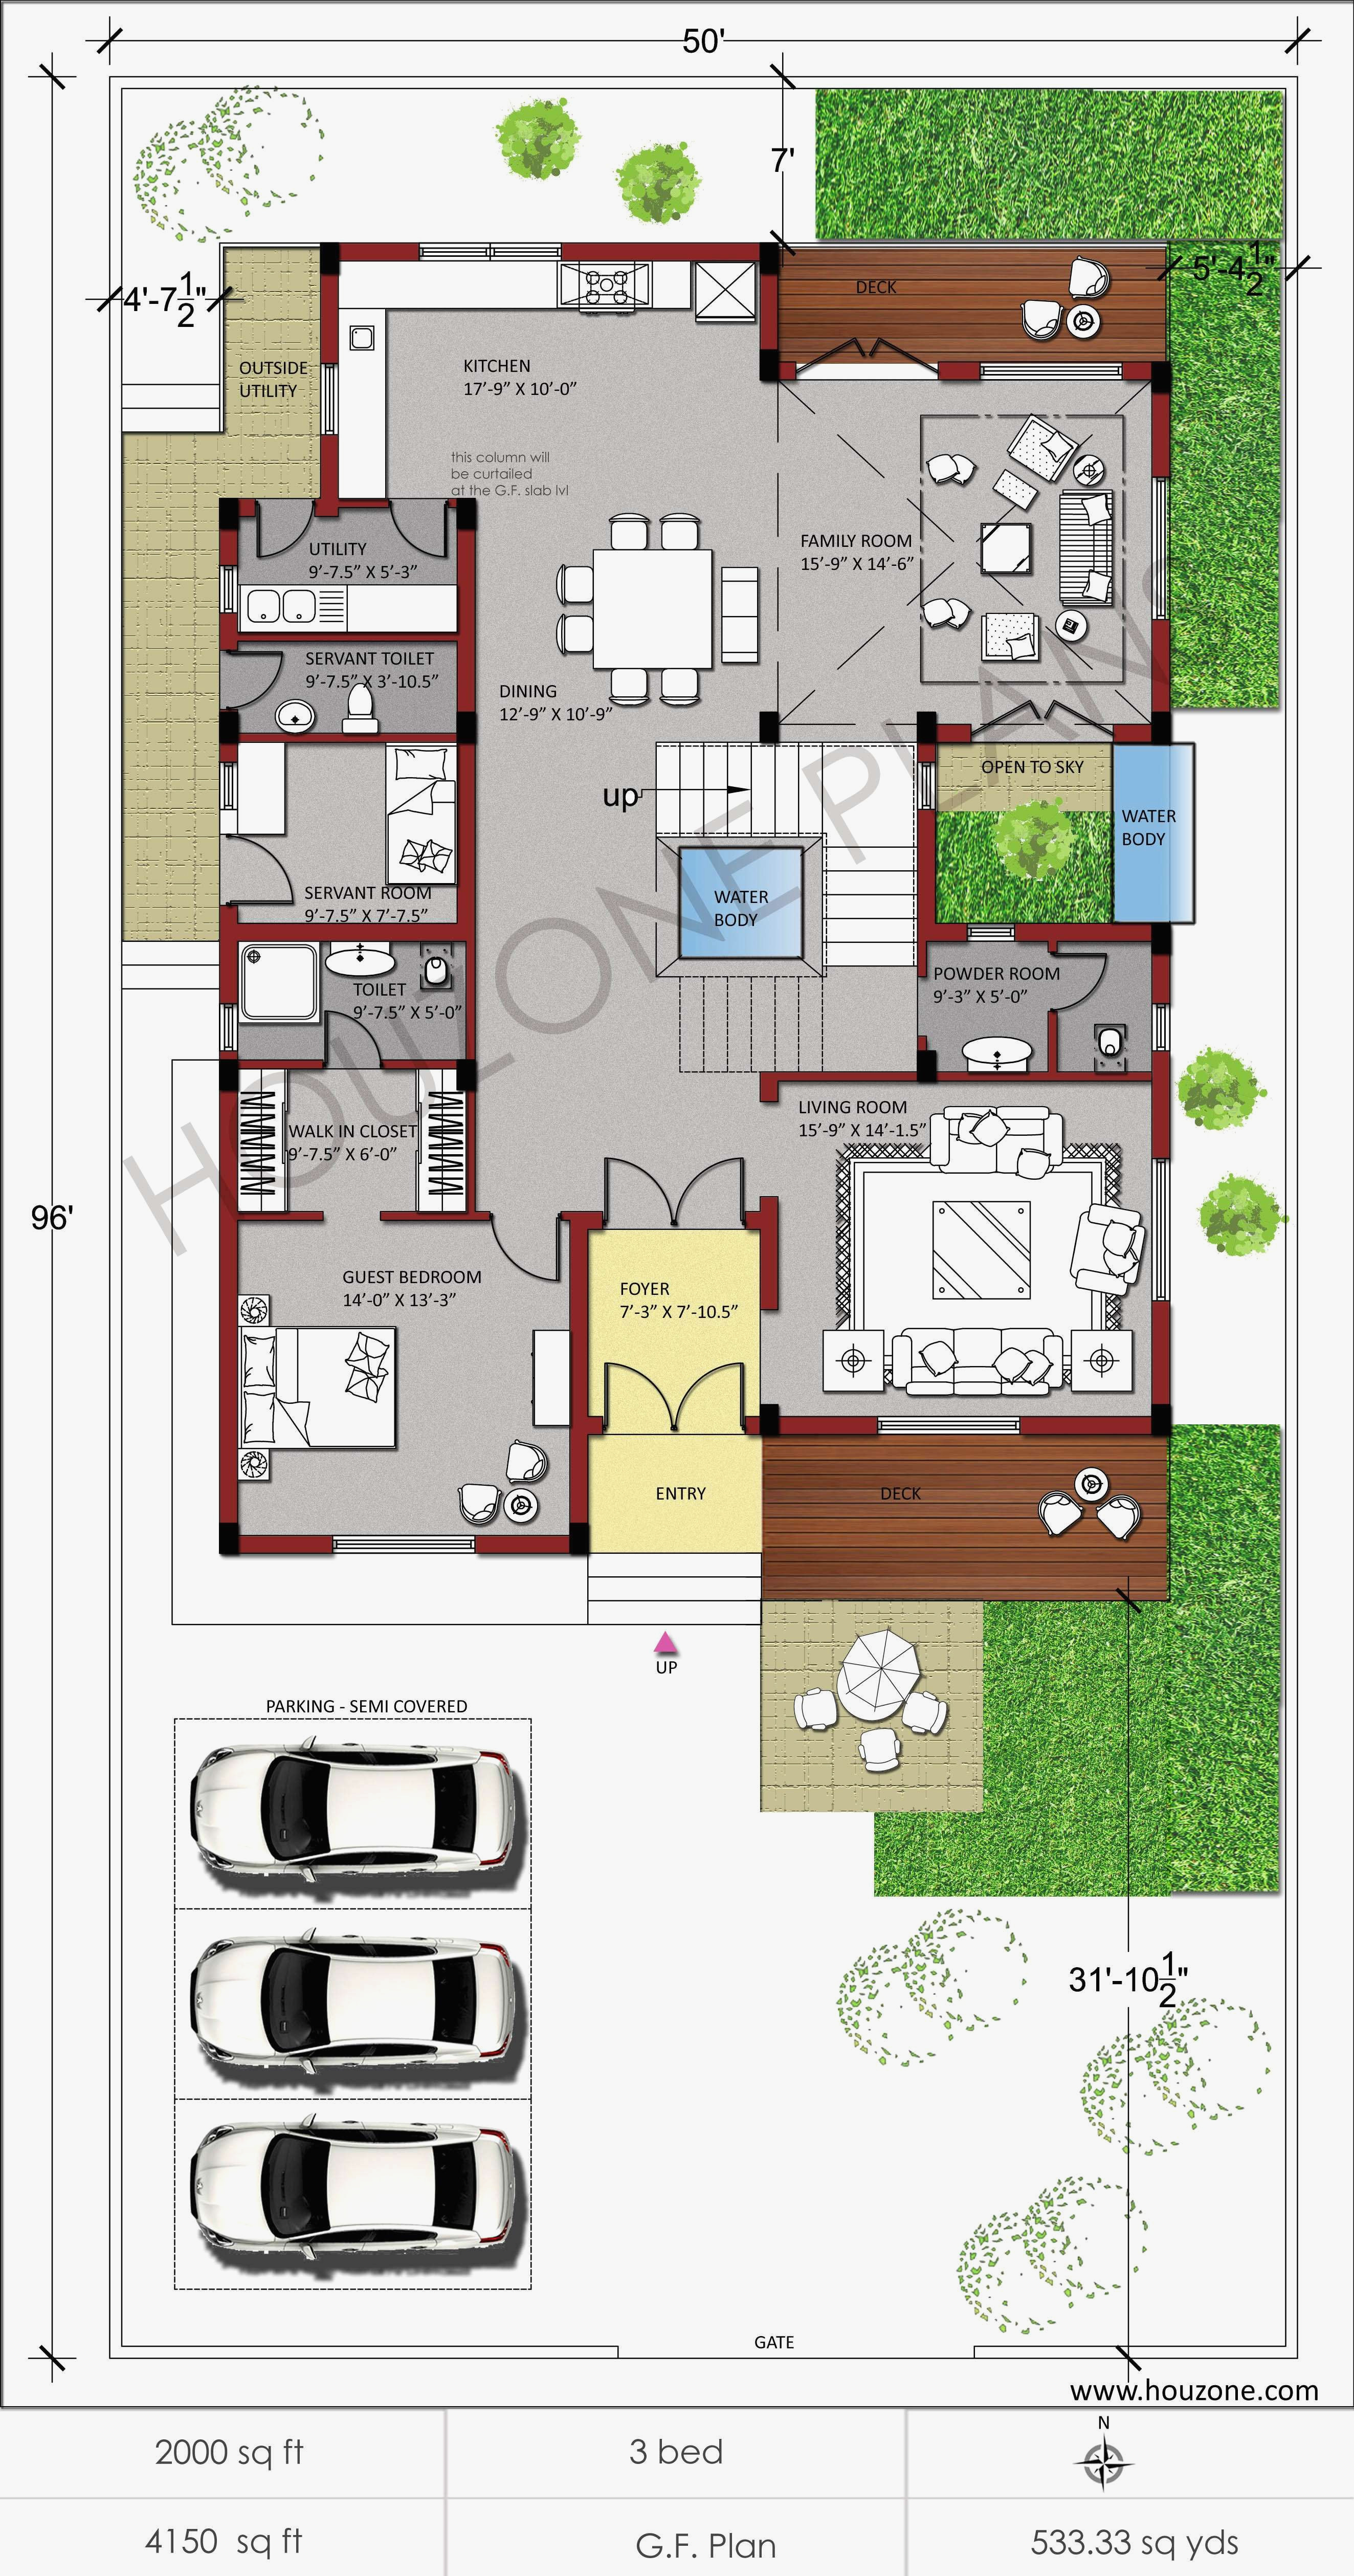 duplex house plans indian style lovely duplex house plans trending duplex home plans indian style of duplex house plans indian style